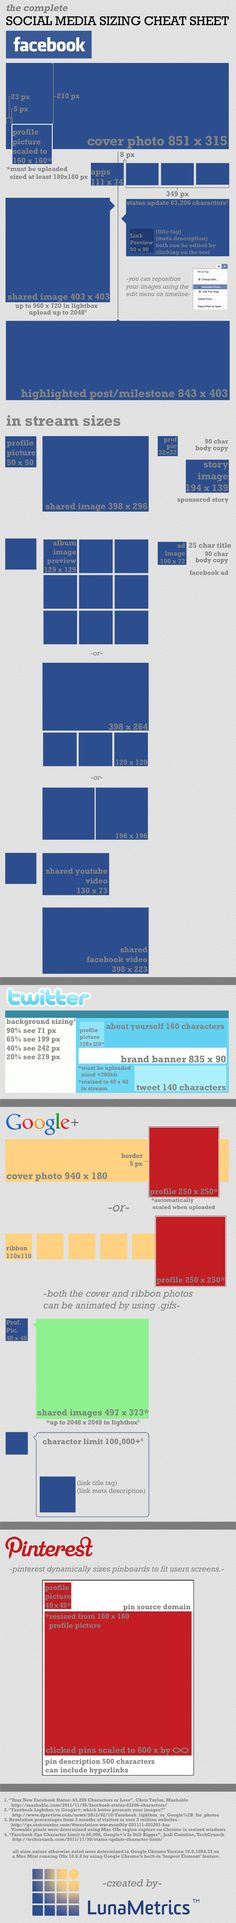 Social-Media-Image-Sizing #infographic